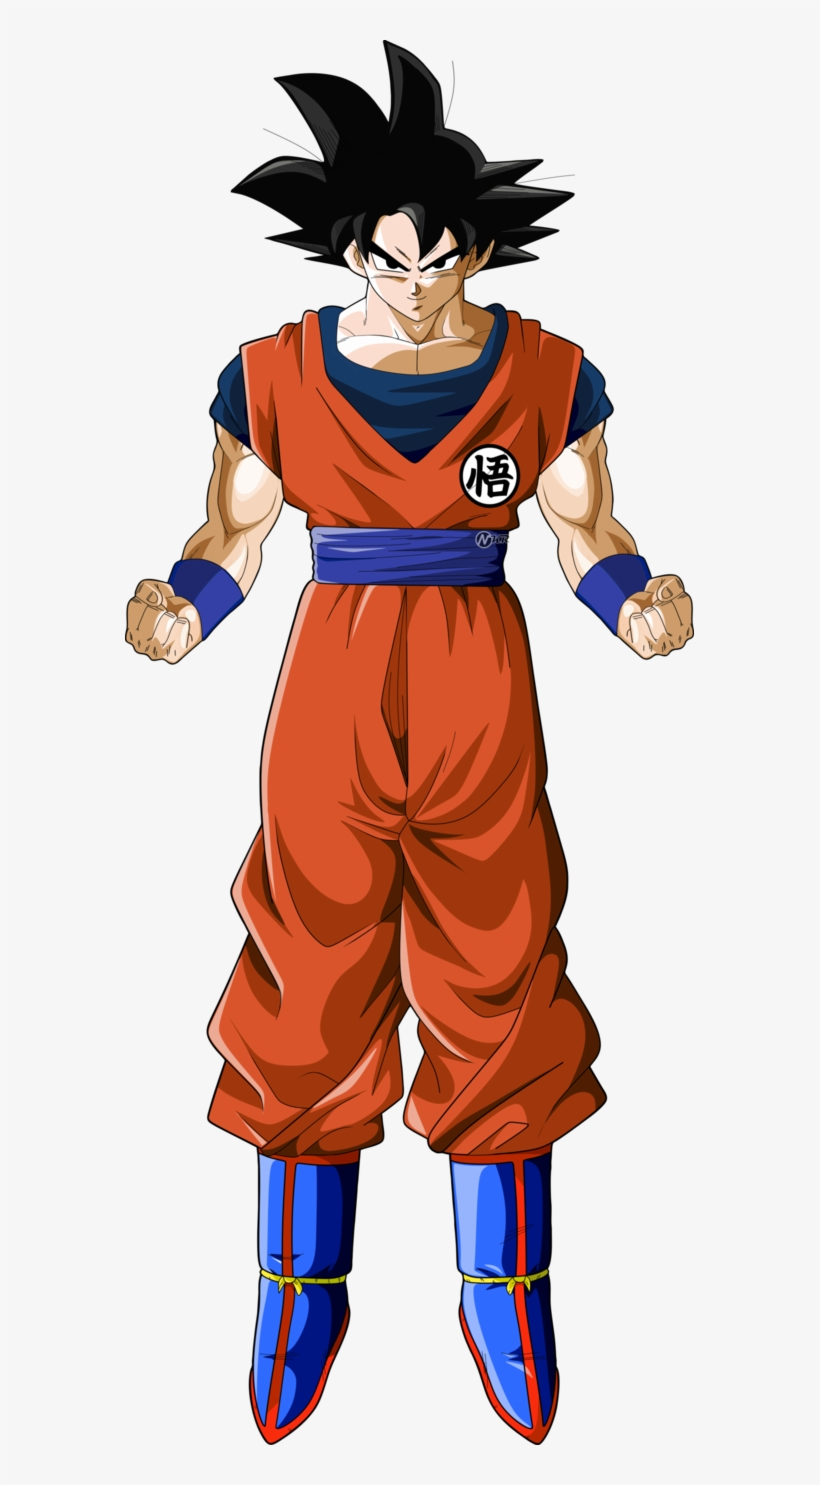 Goku Dragon Ball Gohan Del Futuro Free Transparent Png